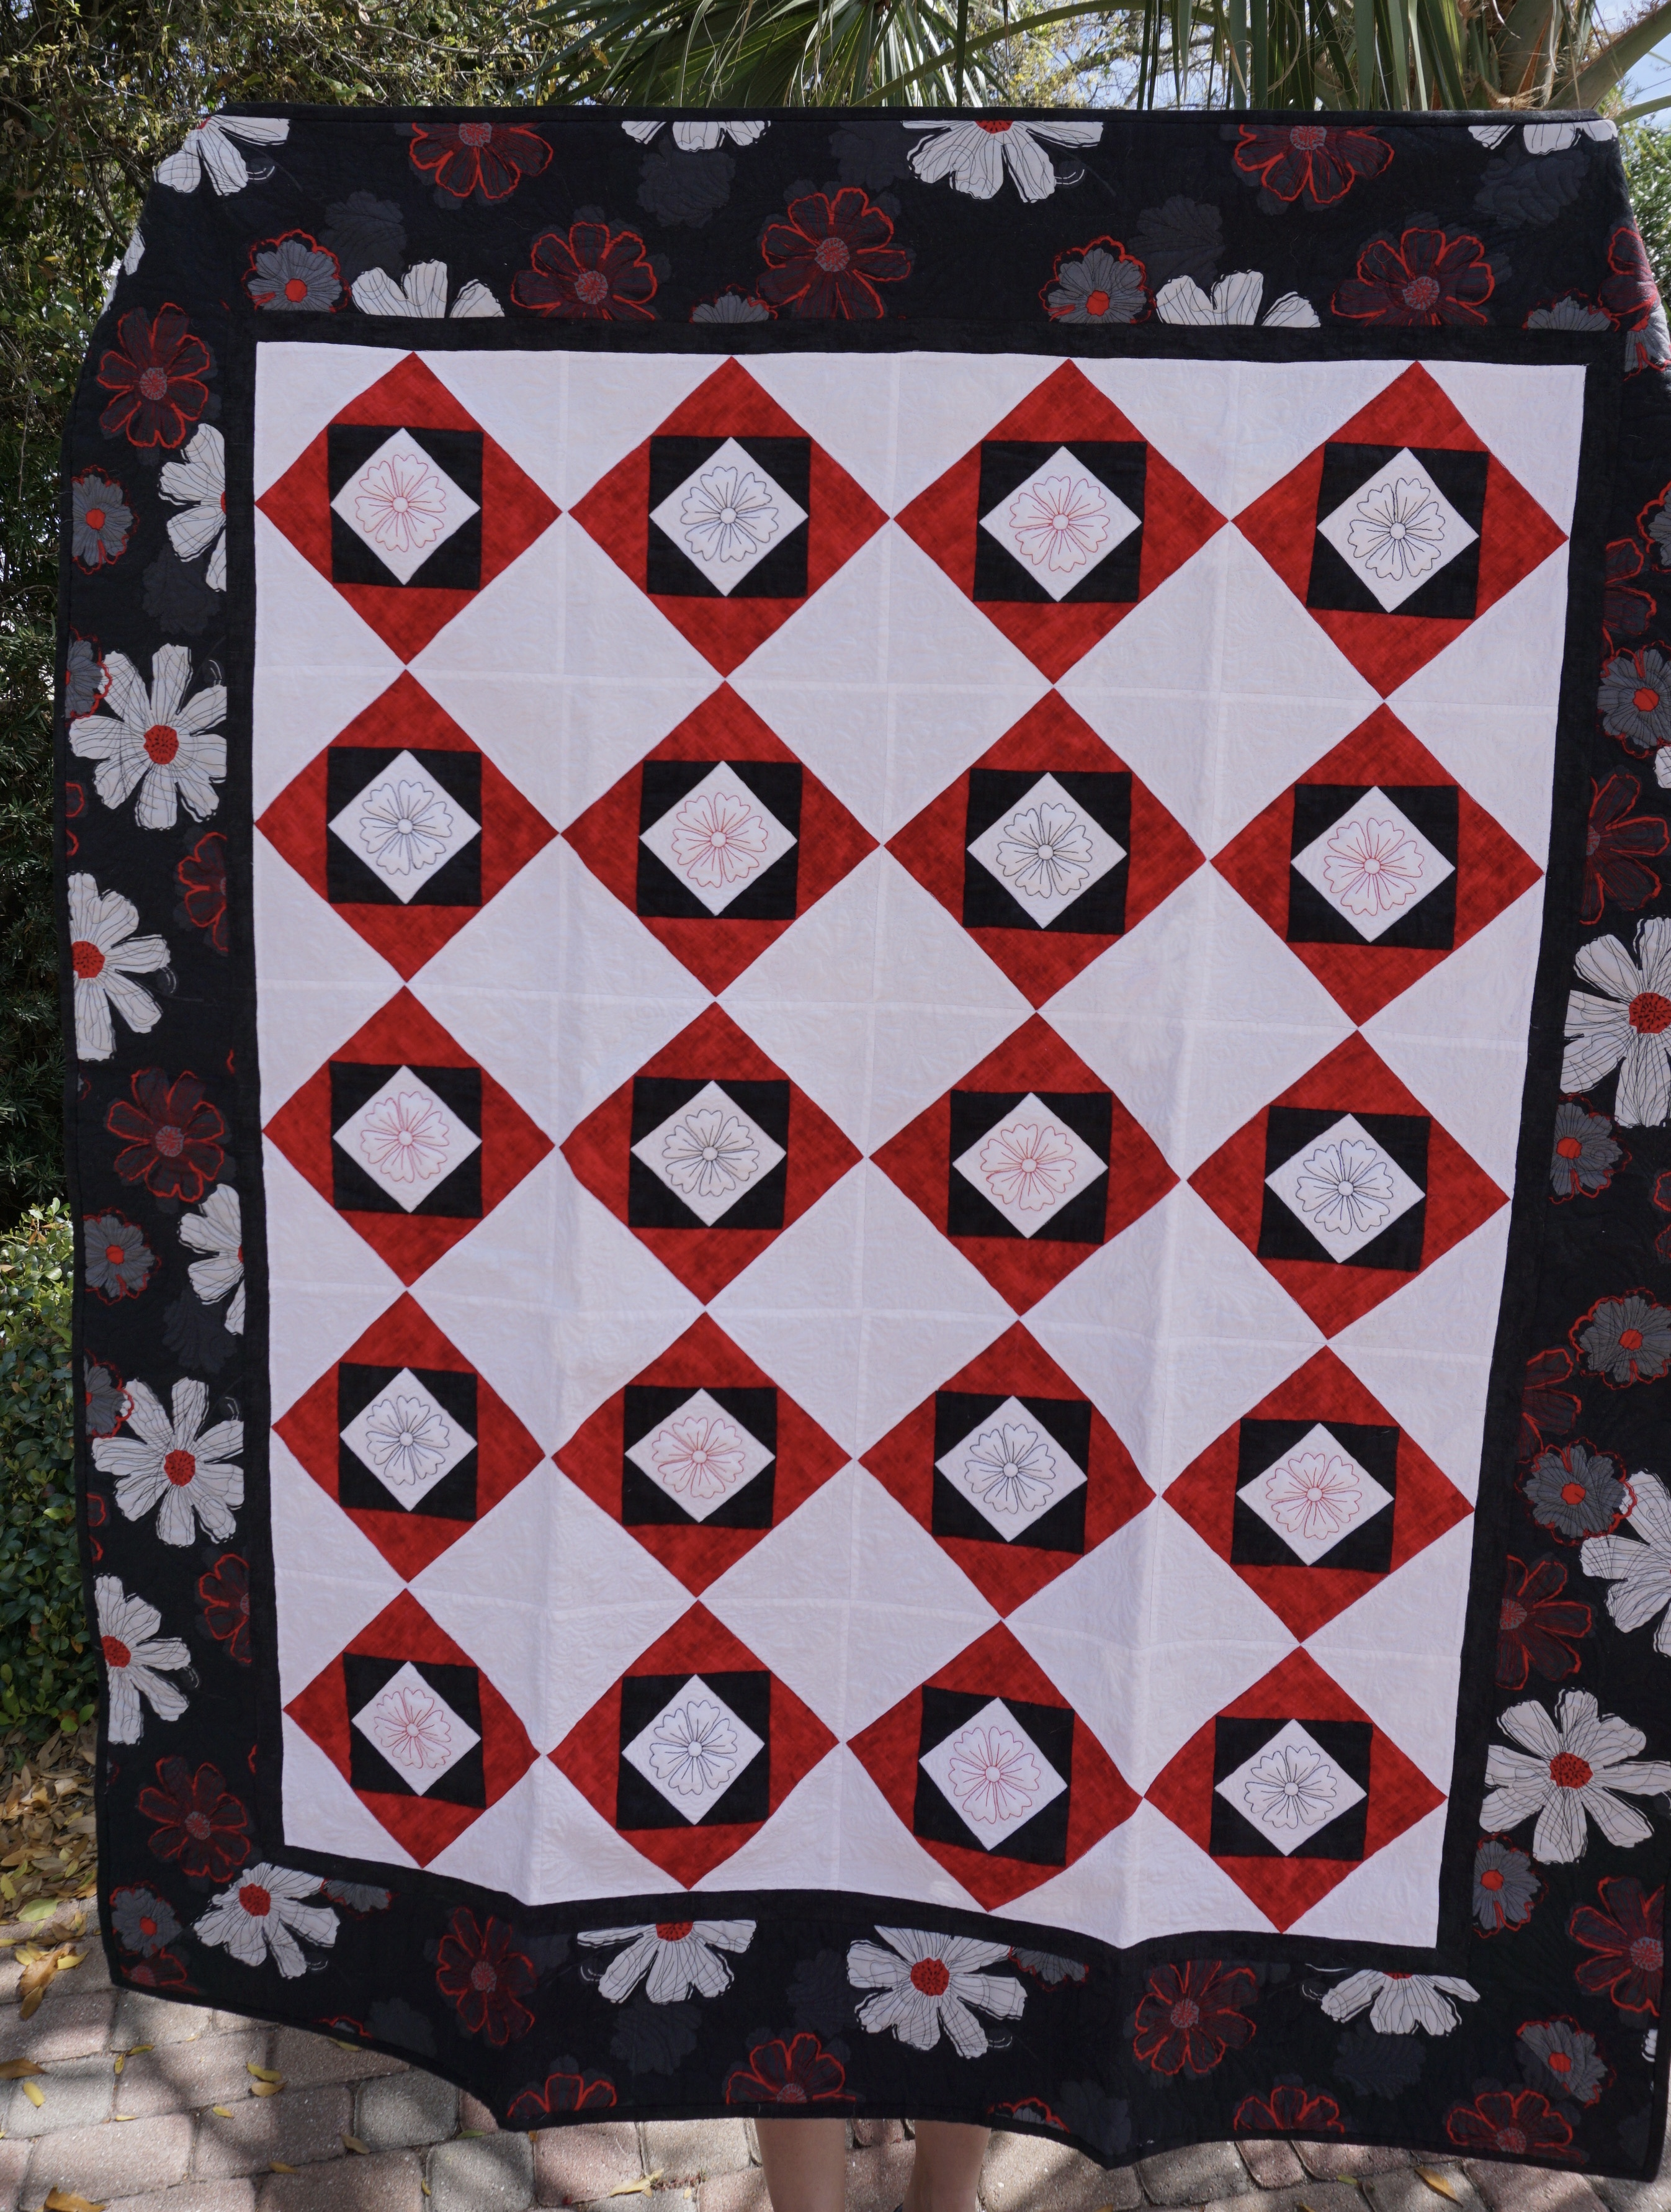 binding tuesday before hour did an quilting as get flying front quilt my list all finish and onto goes far the diamond to only stitch do alpine managed i sewn geese image